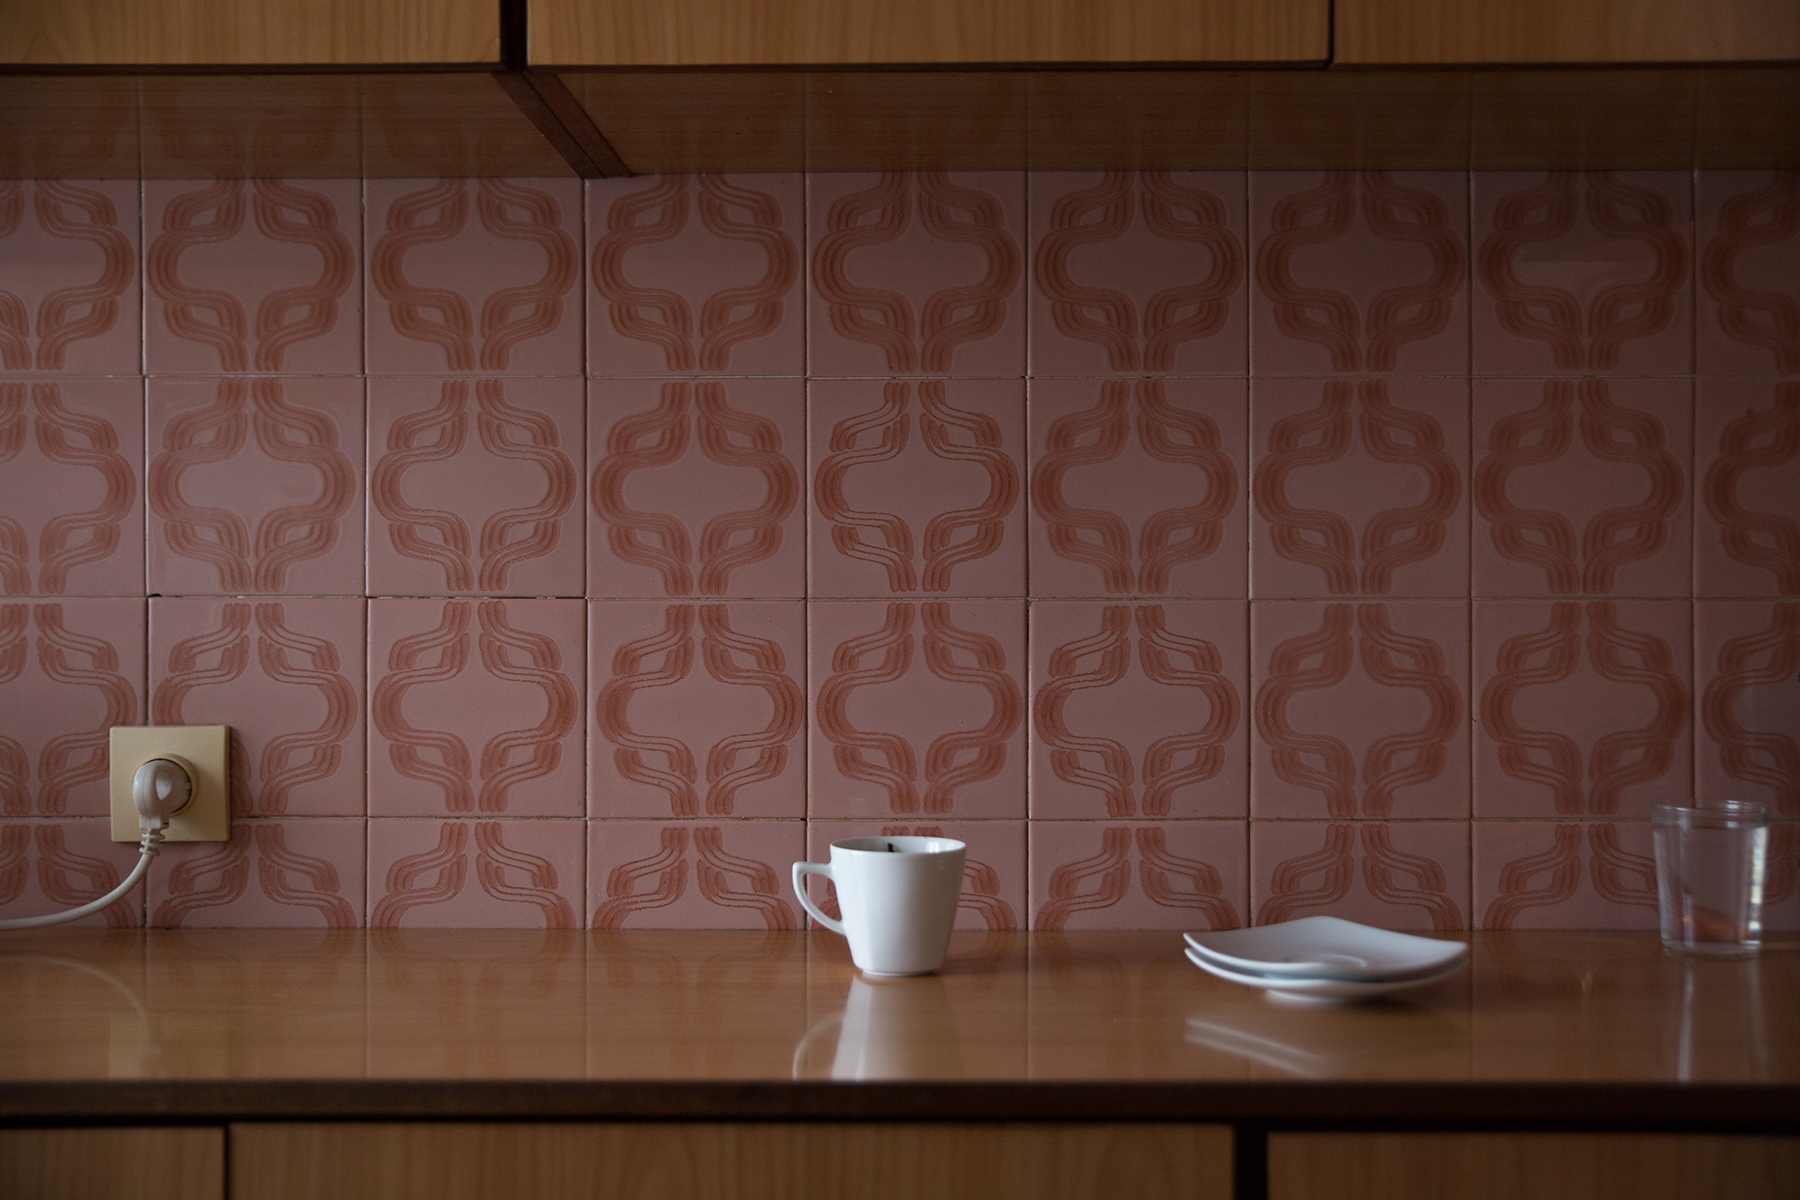 Photographic series Wall Unit by Paulina Korobkiewicz as featured in Semi Zine Magazine.